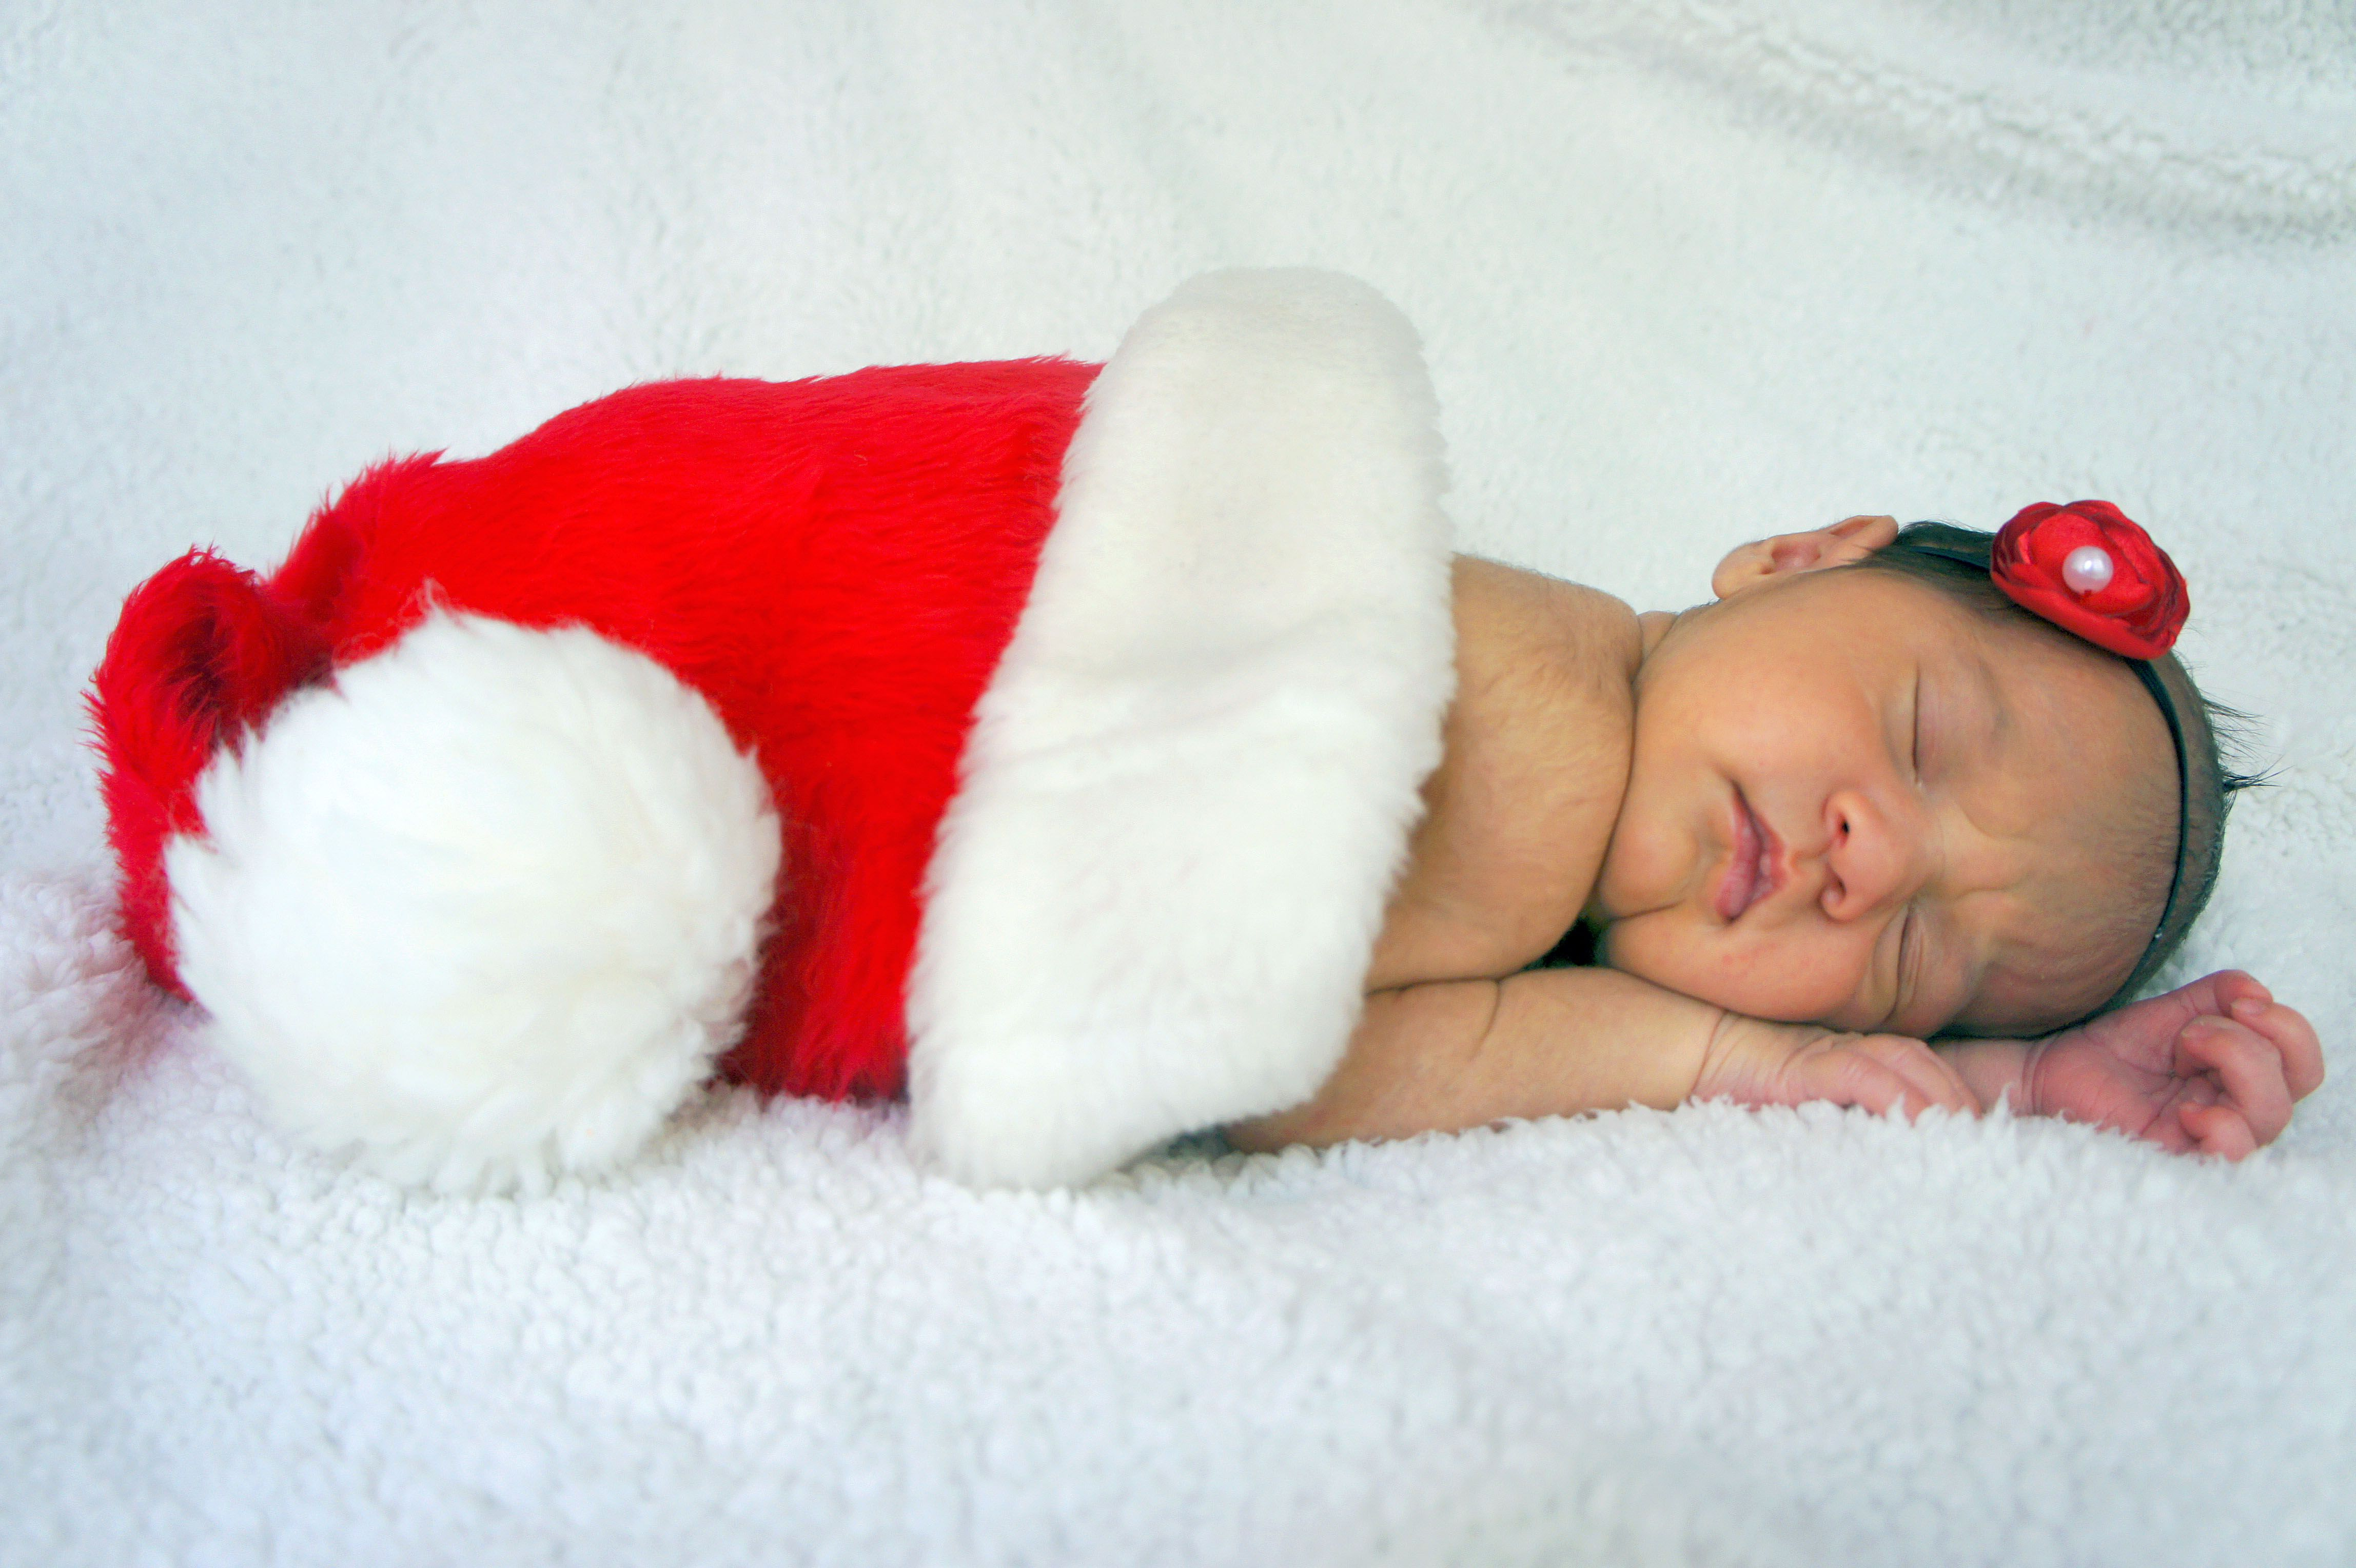 Christmas Baby.....I really wanna put the baby in a STOCKING though!! I hope it fits!